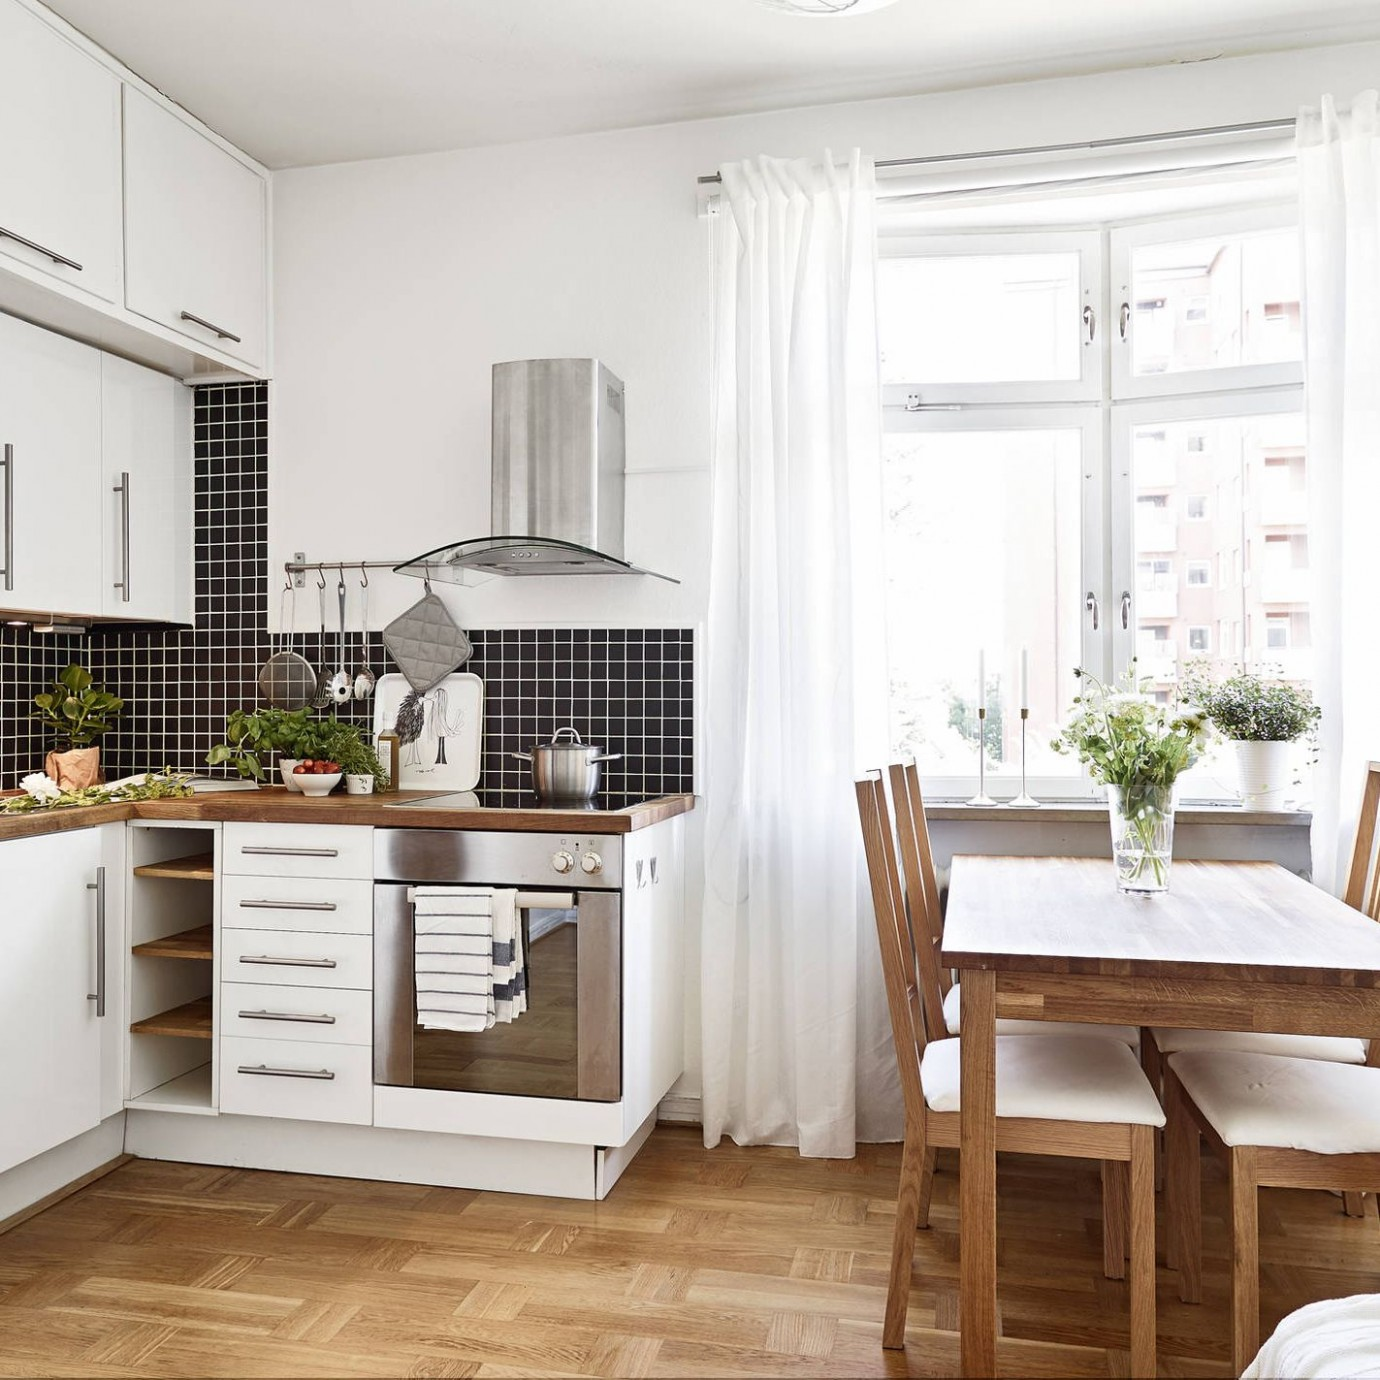 12 Space-Making Hacks for Small Kitchens - Small Dining Room Kitchen Ideas